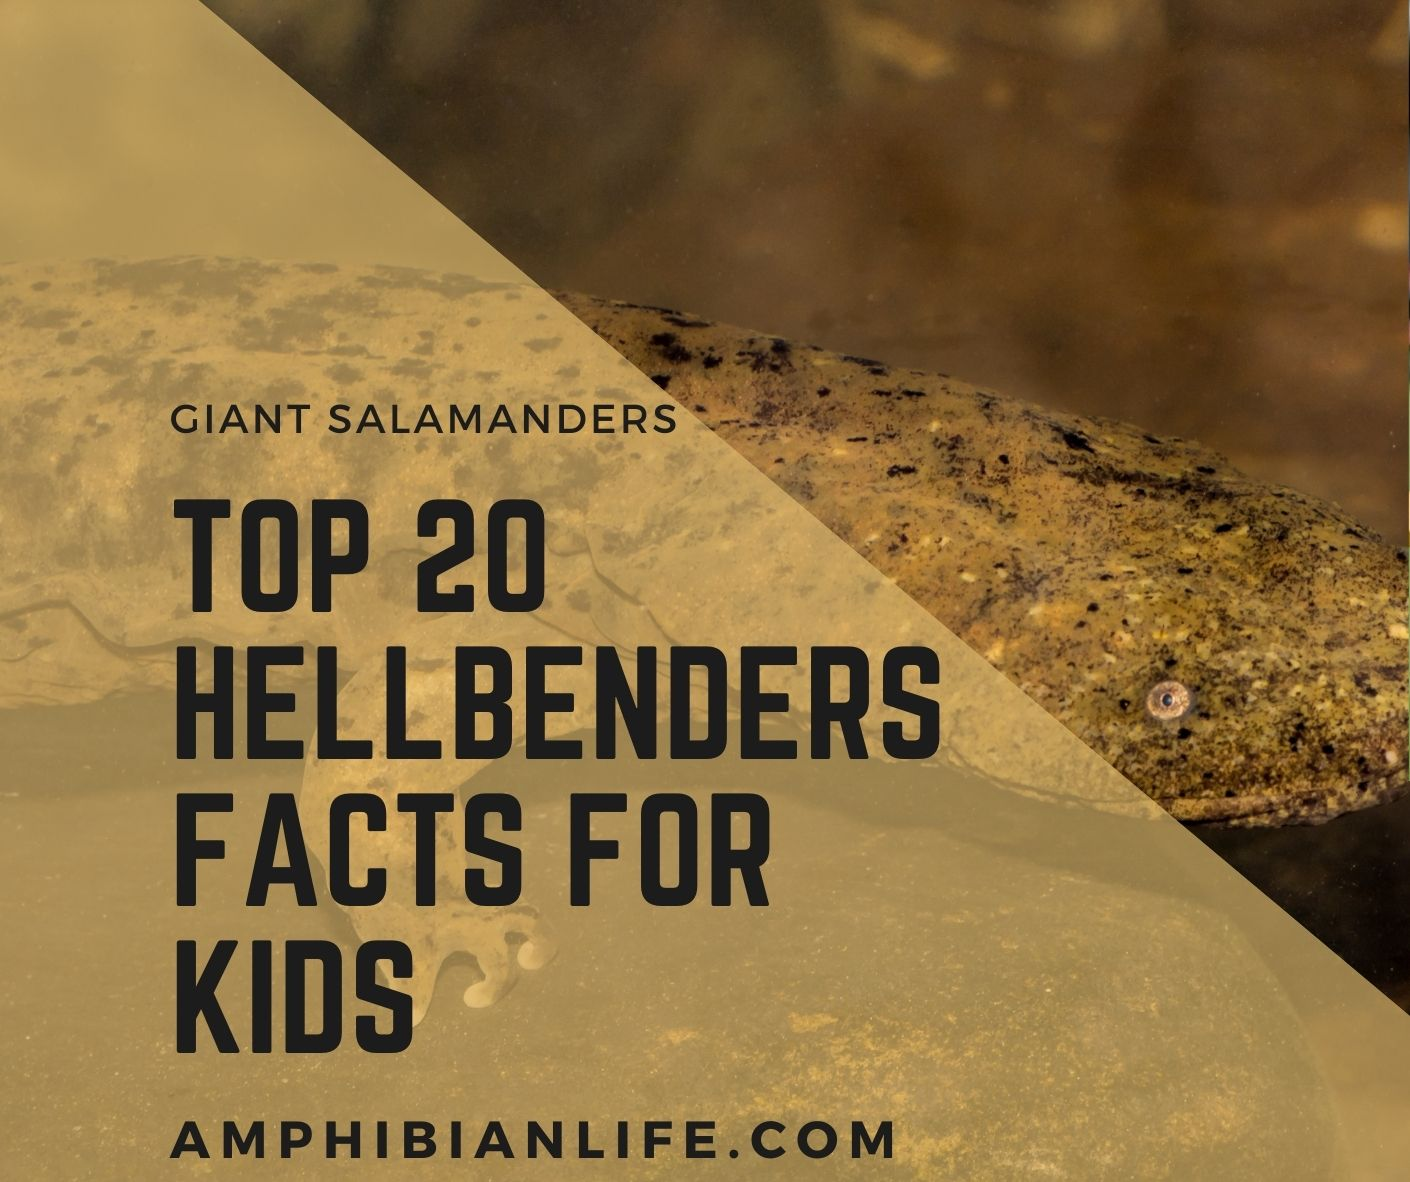 hellbenders facts for kids